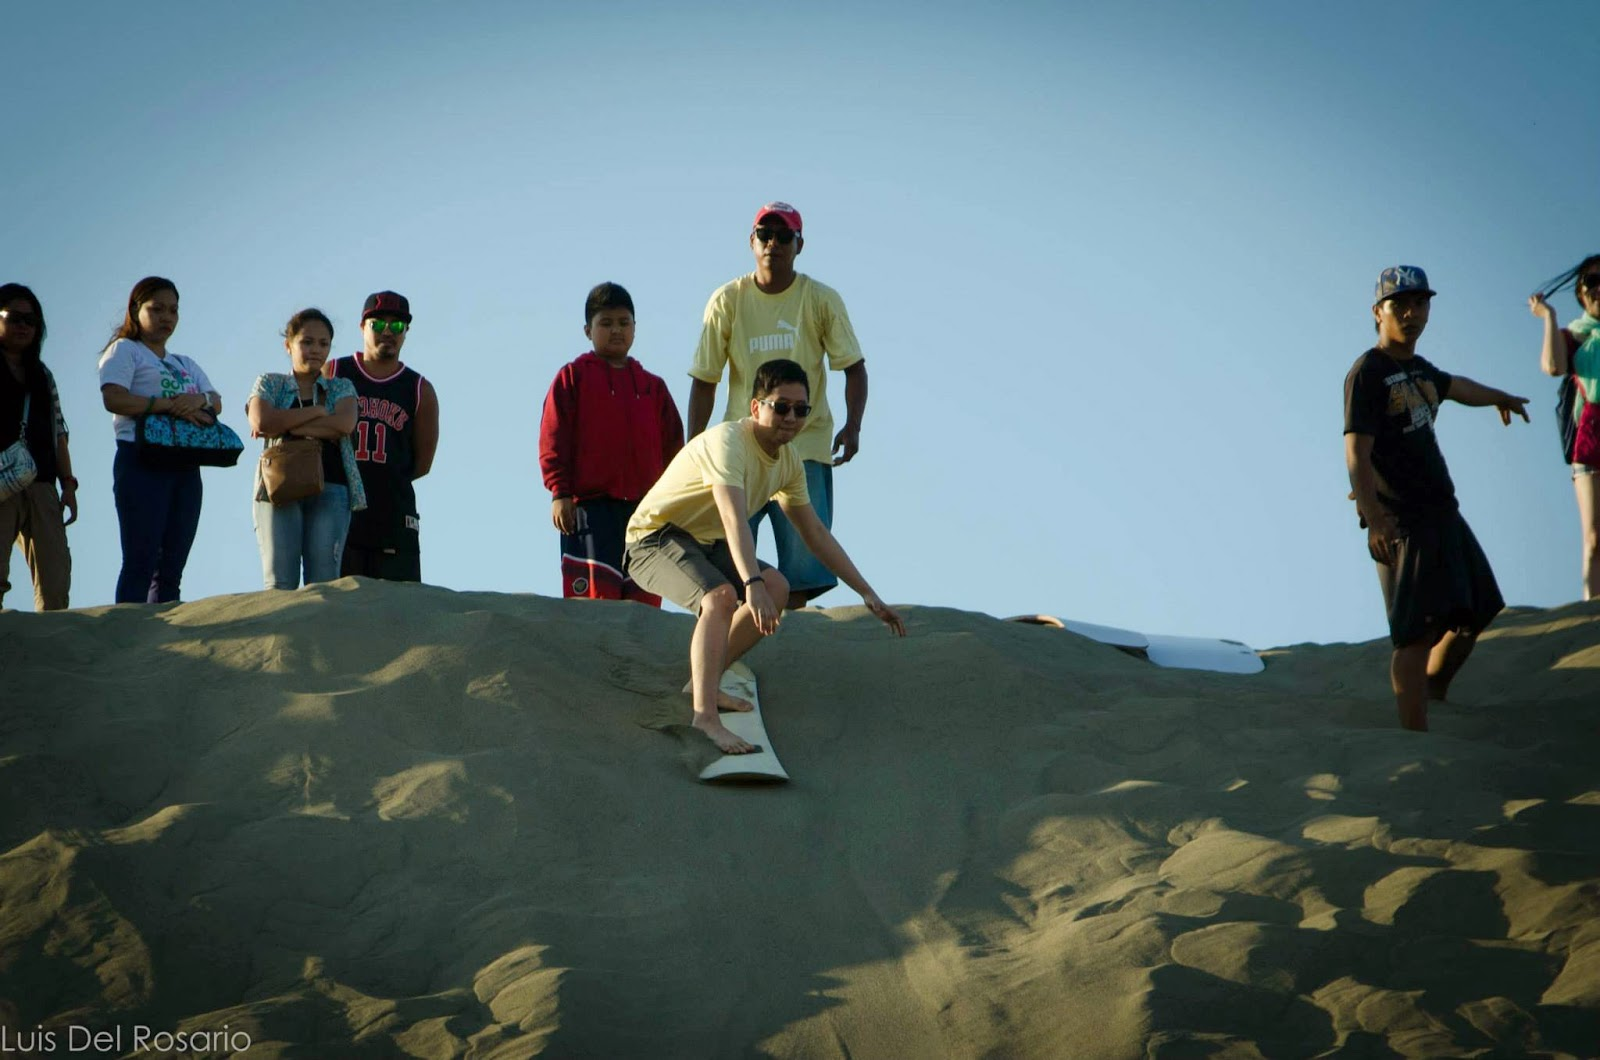 Sand Surfing in the amazing sand dunes of Paoay, Ilocos Norte